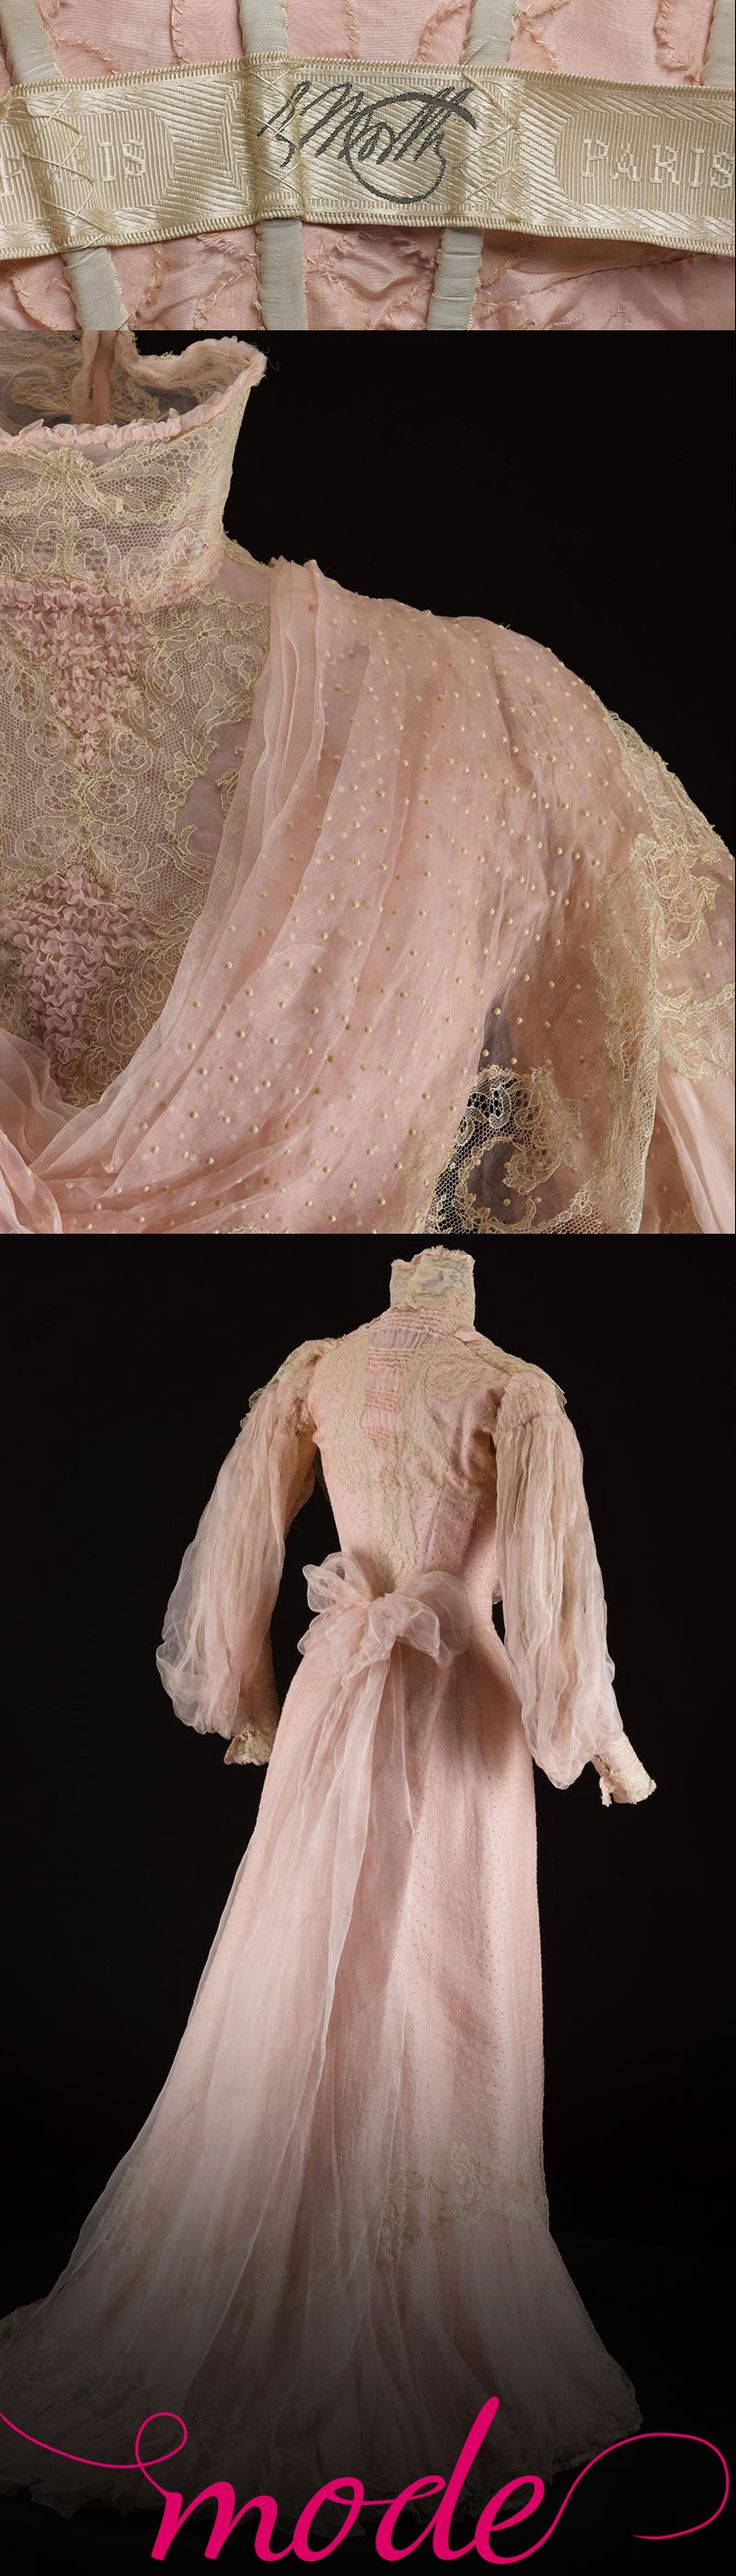 Charles Frederick Worth is known as the father of haute couture. His designs, like this beautiful organza confection, are renowned for their lavish fabrics and trimmings and attention to fit.  Find out more about this dress and many more at http://www.nms.ac.uk/mode. Mode is your personal, portable guide to the new Fashion and Style gallery at the National Museum of Scotland. Luxuriate in couture details with close-up images and 360 views, and discover the history of fashion.